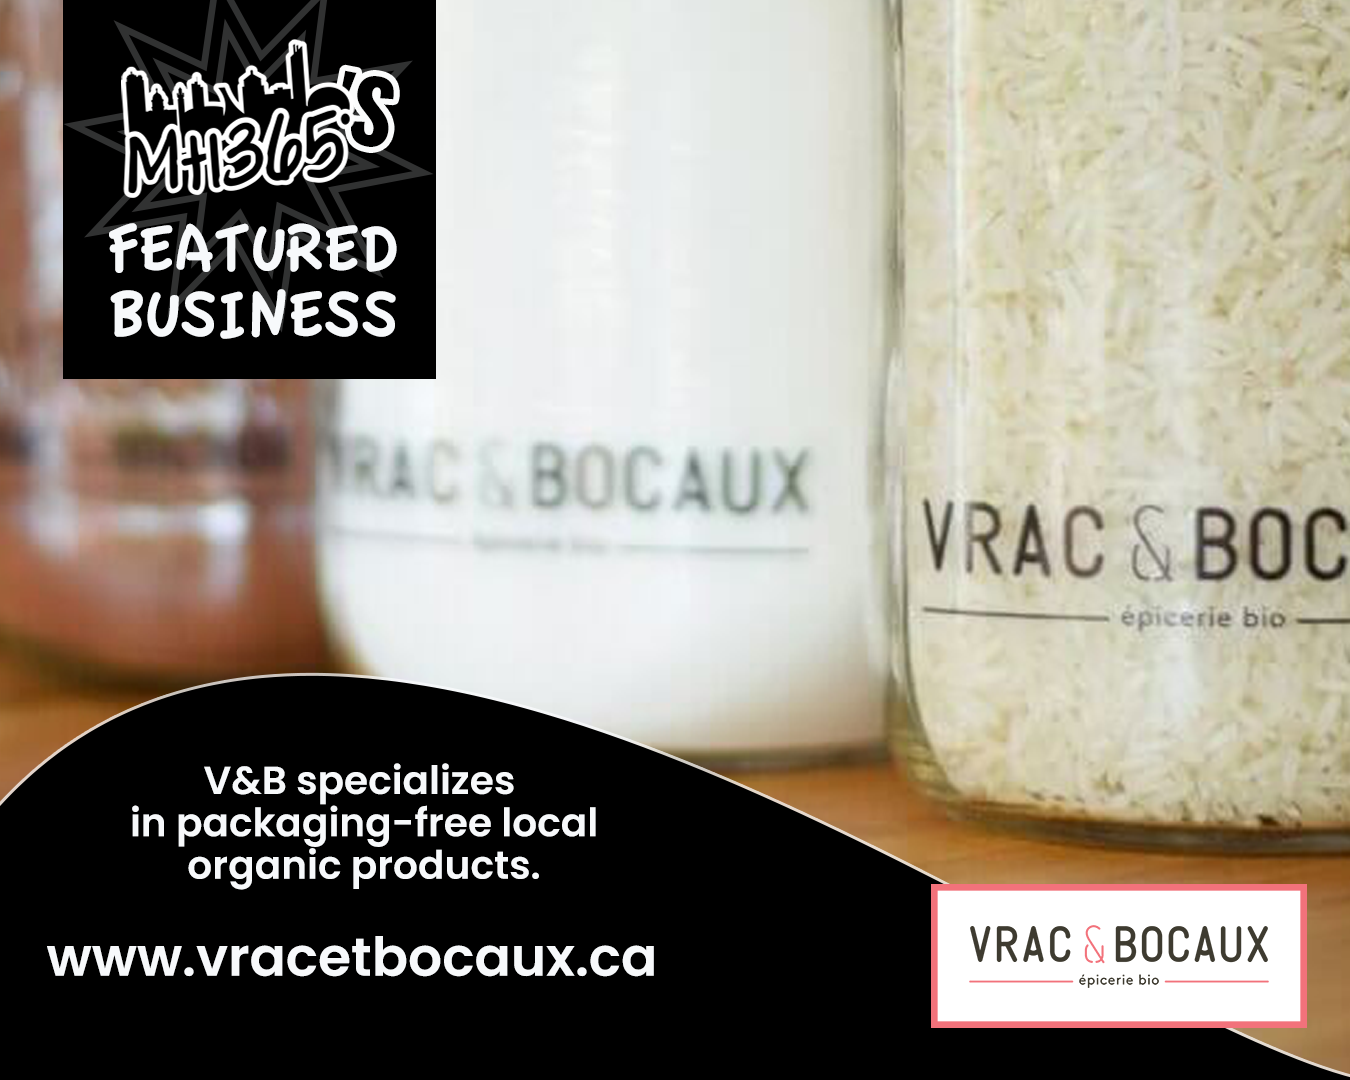 mtl 365 featured biz vrac may 7 for posting 1350 x1080